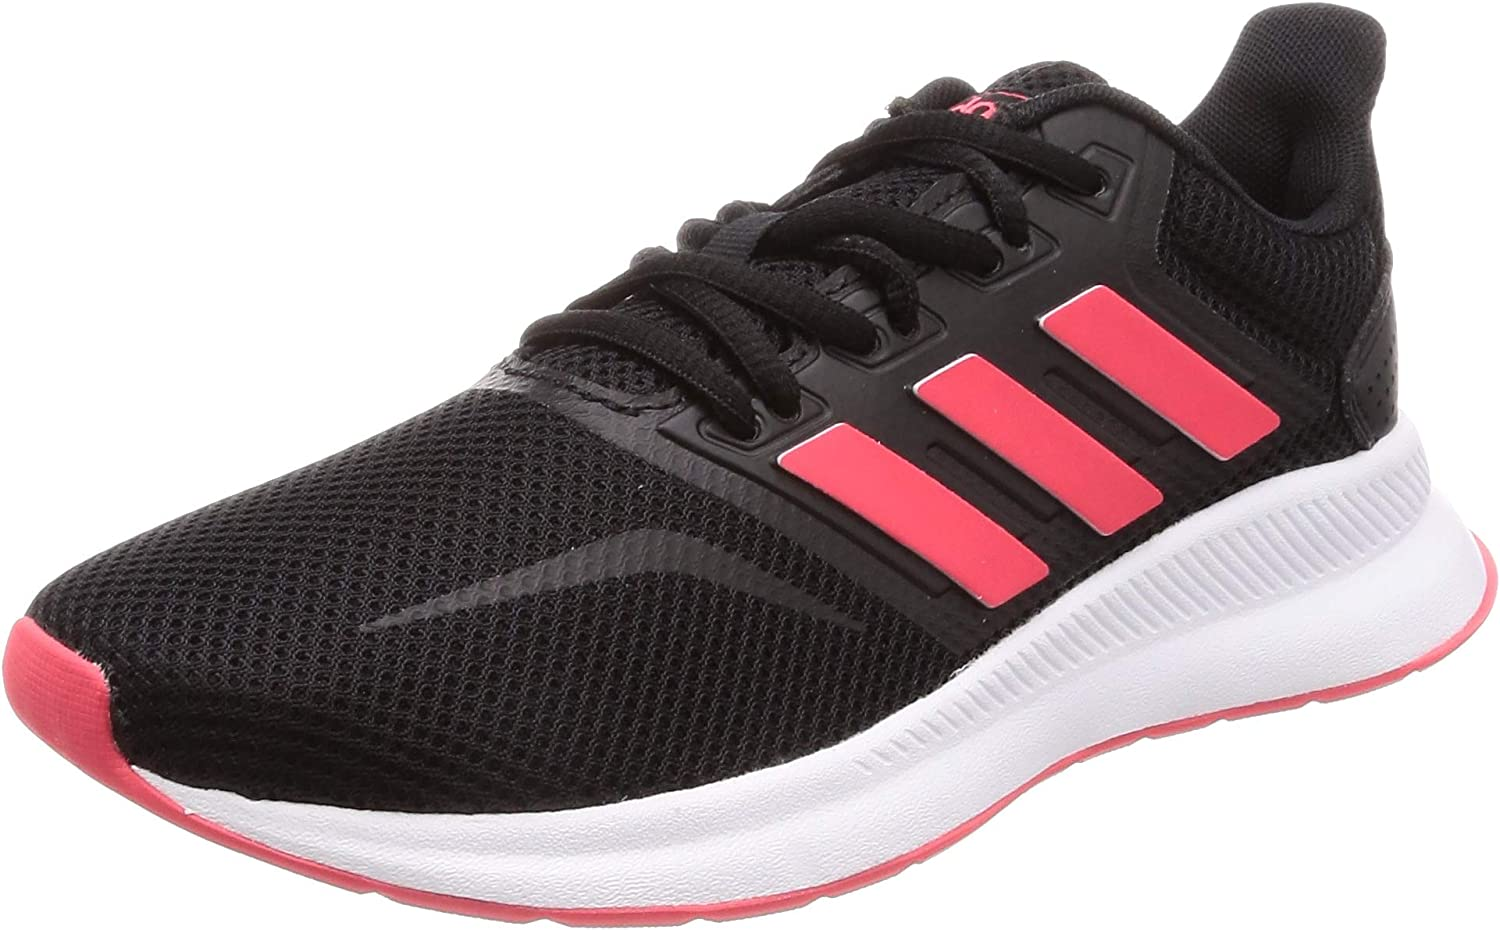 Adidas Women's Falcon Low-Top Sneakers